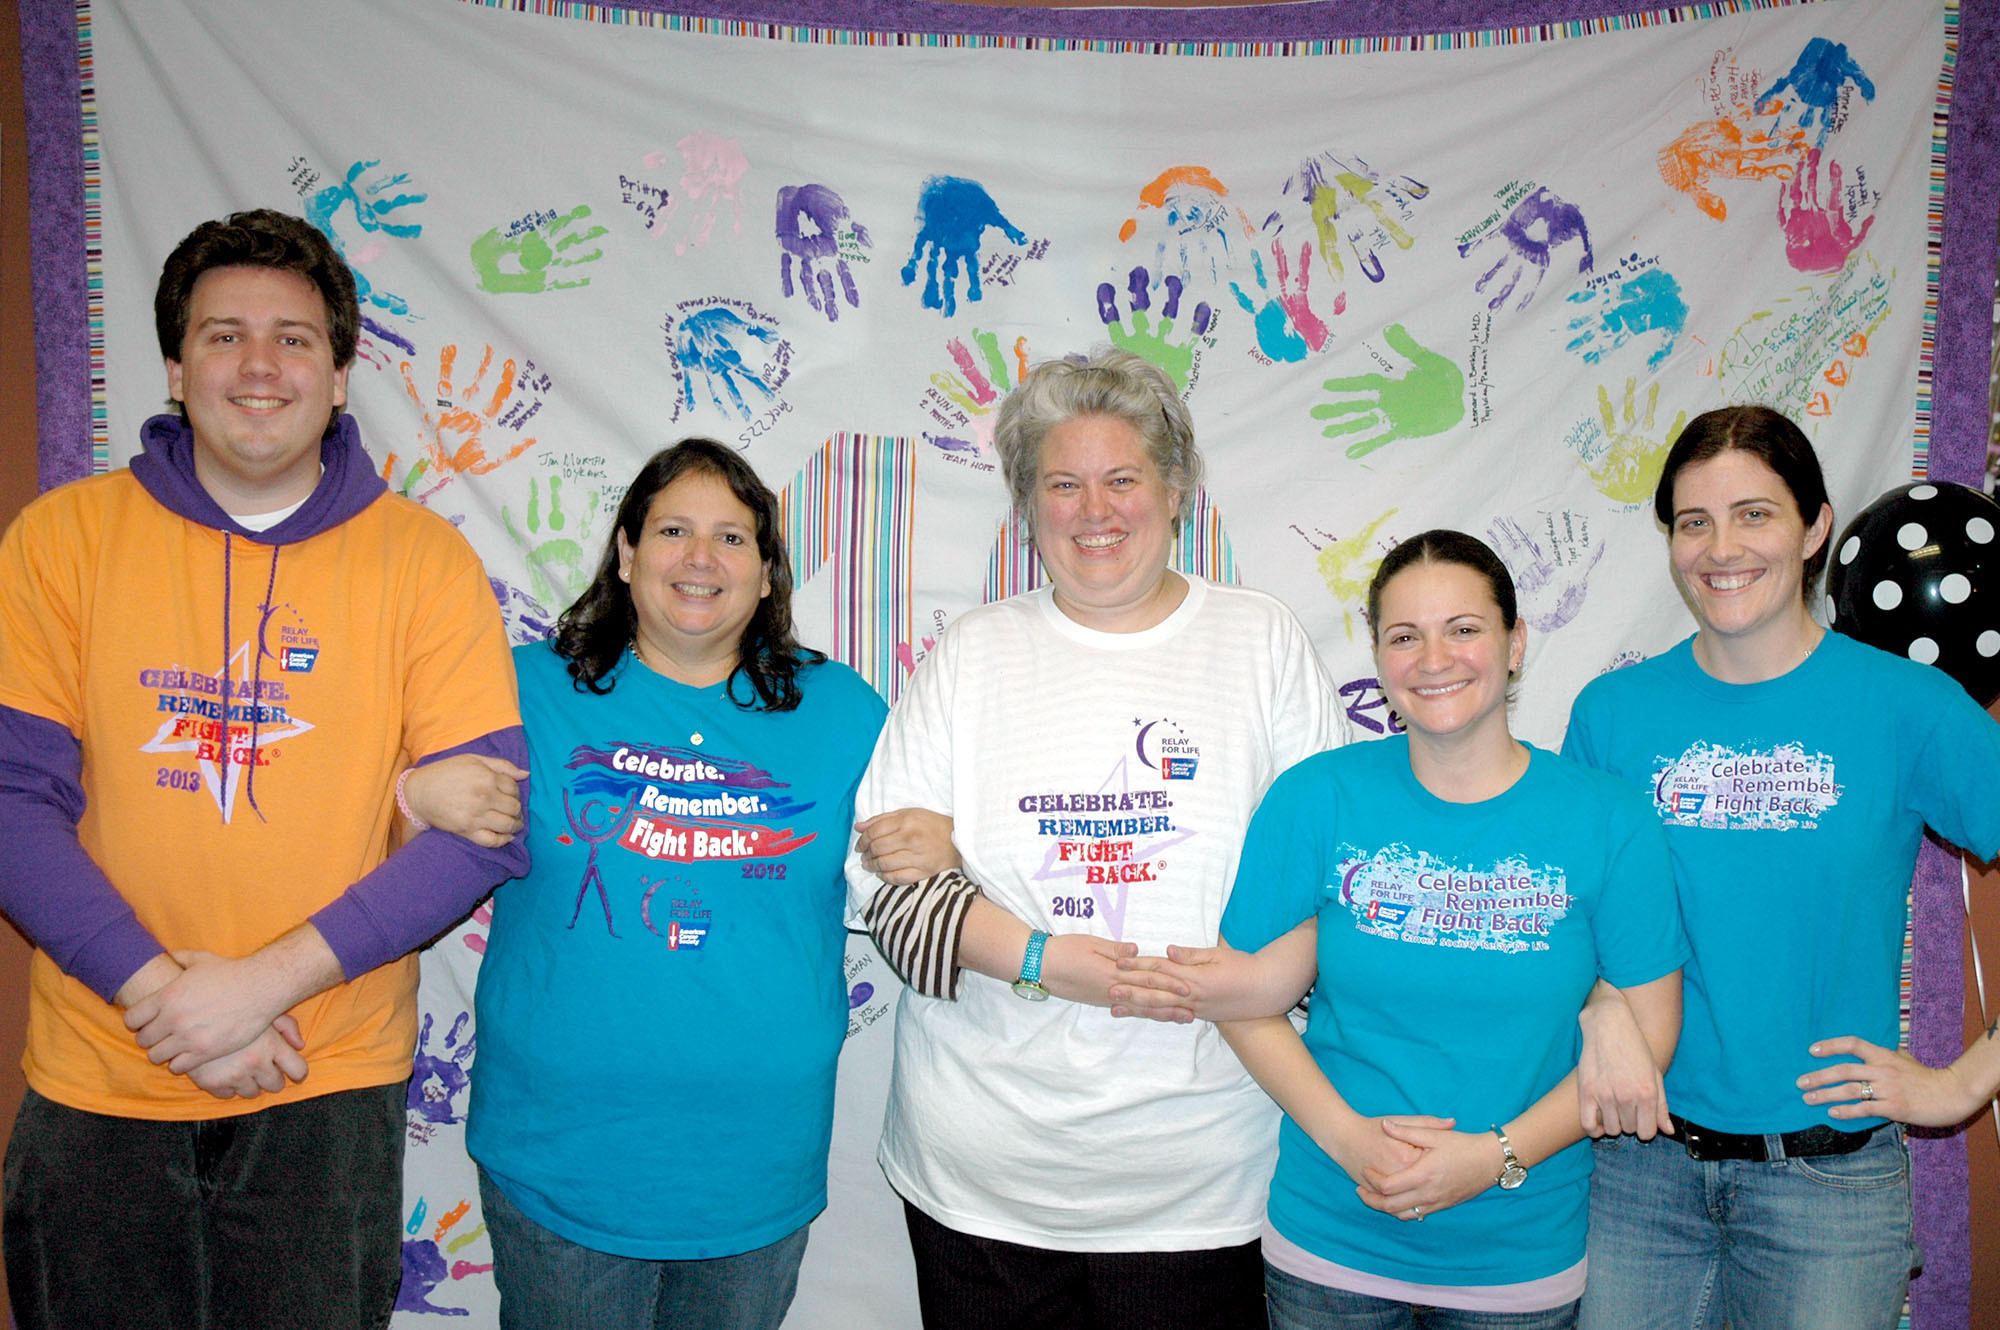 Volunteers for the American Cancer Society's Relay for Life race in Burbank include, from left, Willy Donica, entertainment chair; Michele Higginbotham, team recruitment; Kerry McAloon, community outreach chair; Michelle Leiker, fundraising chair; and Erin Leiker, registration chair. Behind them is the Survivor Blanket created last year.